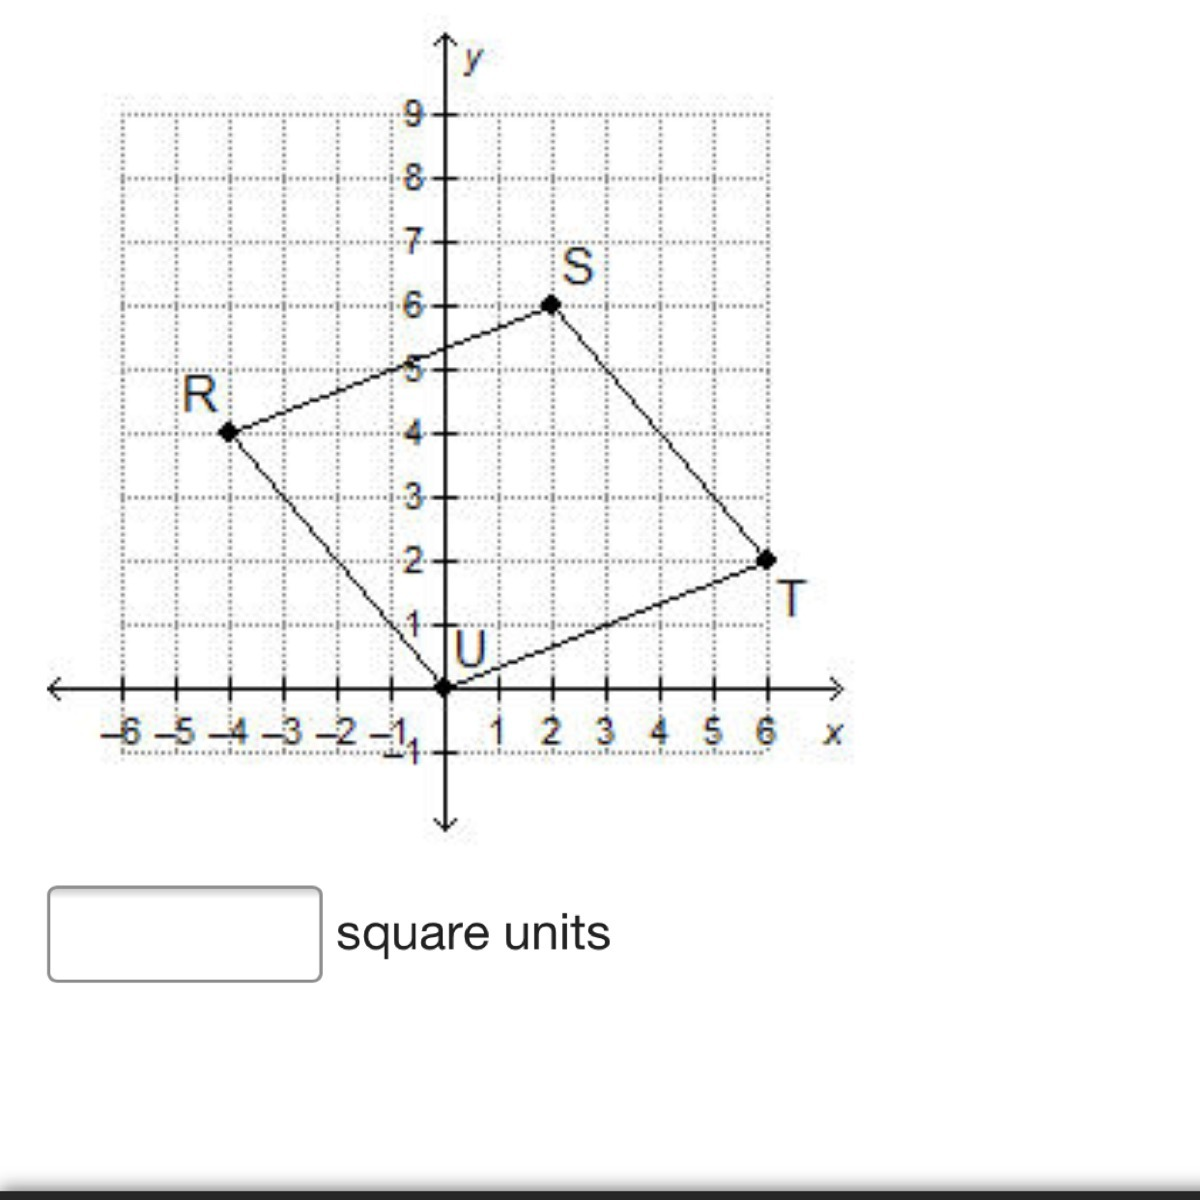 What is the area of parallelogram RSTU? - Brainly.com